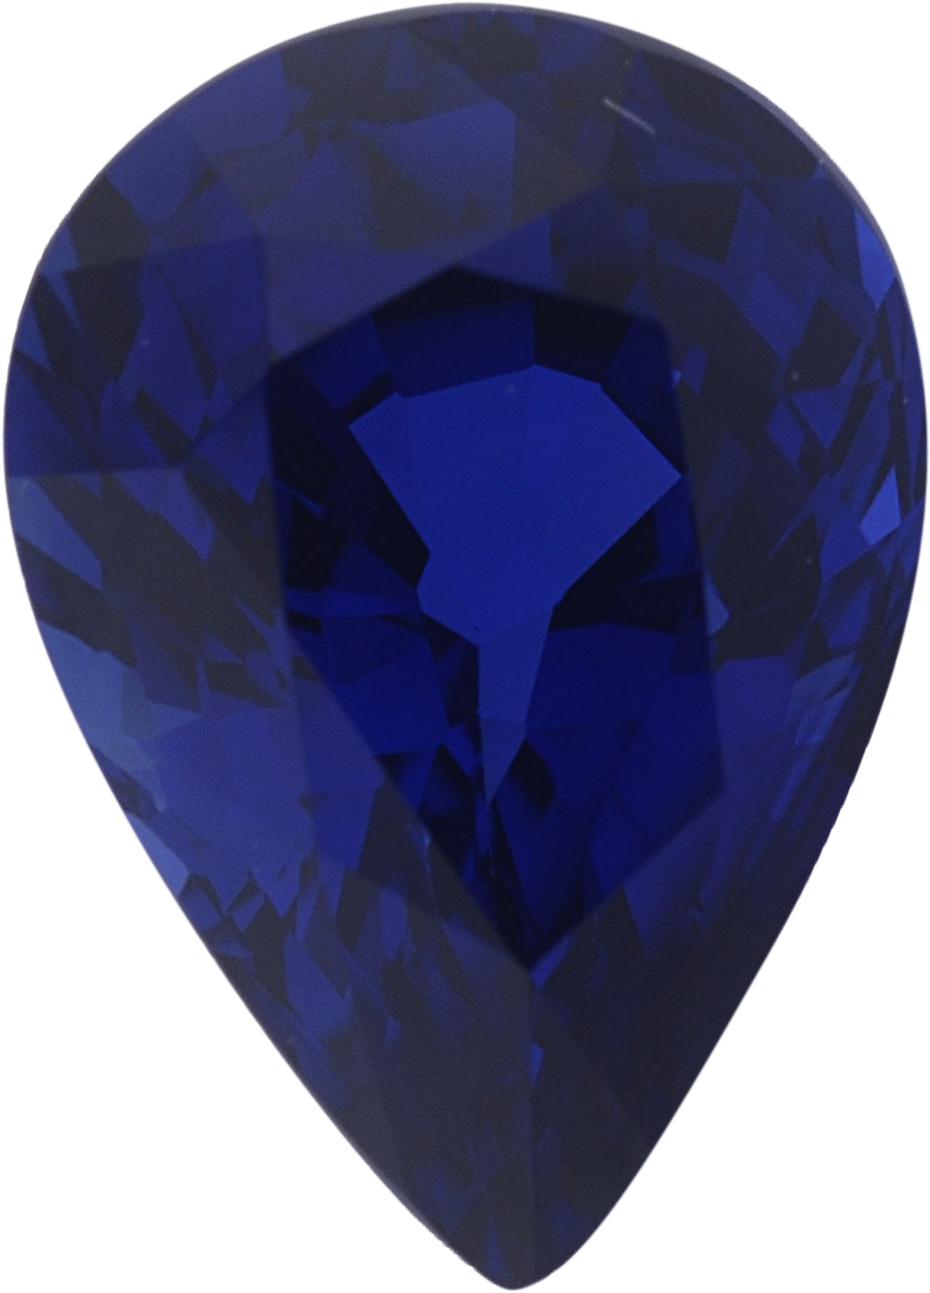 1.21 carats Blue Loose Sapphire Gemstone in Pear Cut, 7.51 x 5.45 mm